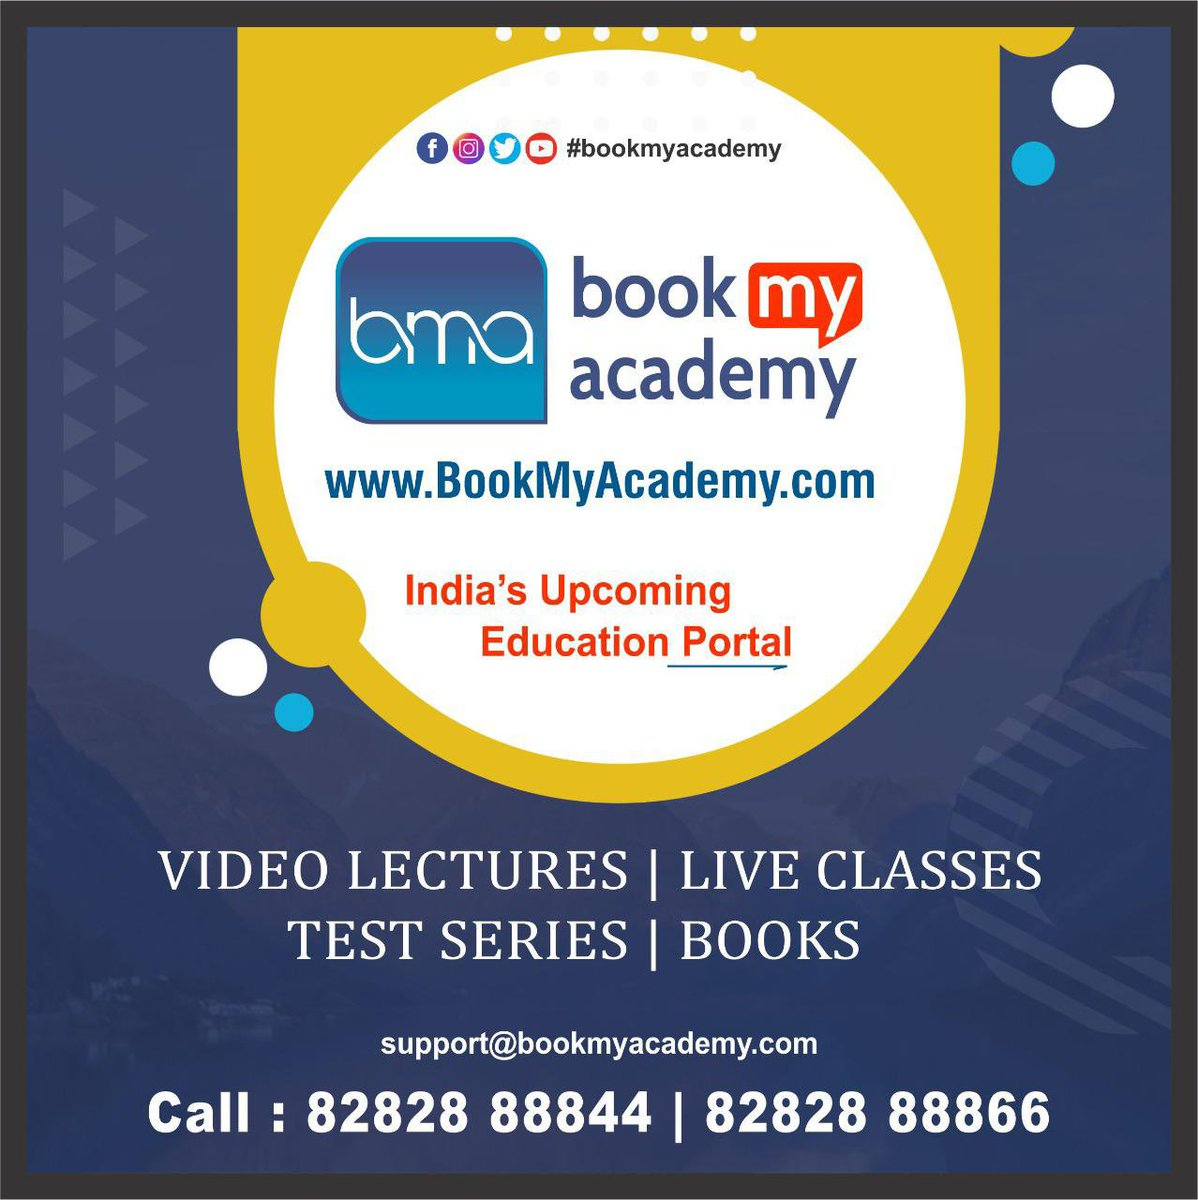 BookMyAcademy offers a vast #library of powerful, up-to-date and engaging #content that includes #video #lectures for online #coaching and offline #classes for face to face learning for multiple #courses and #subjects, #testseries and #MCQs. #BookMyAcademy https://t.co/TSvf6a5vOZ